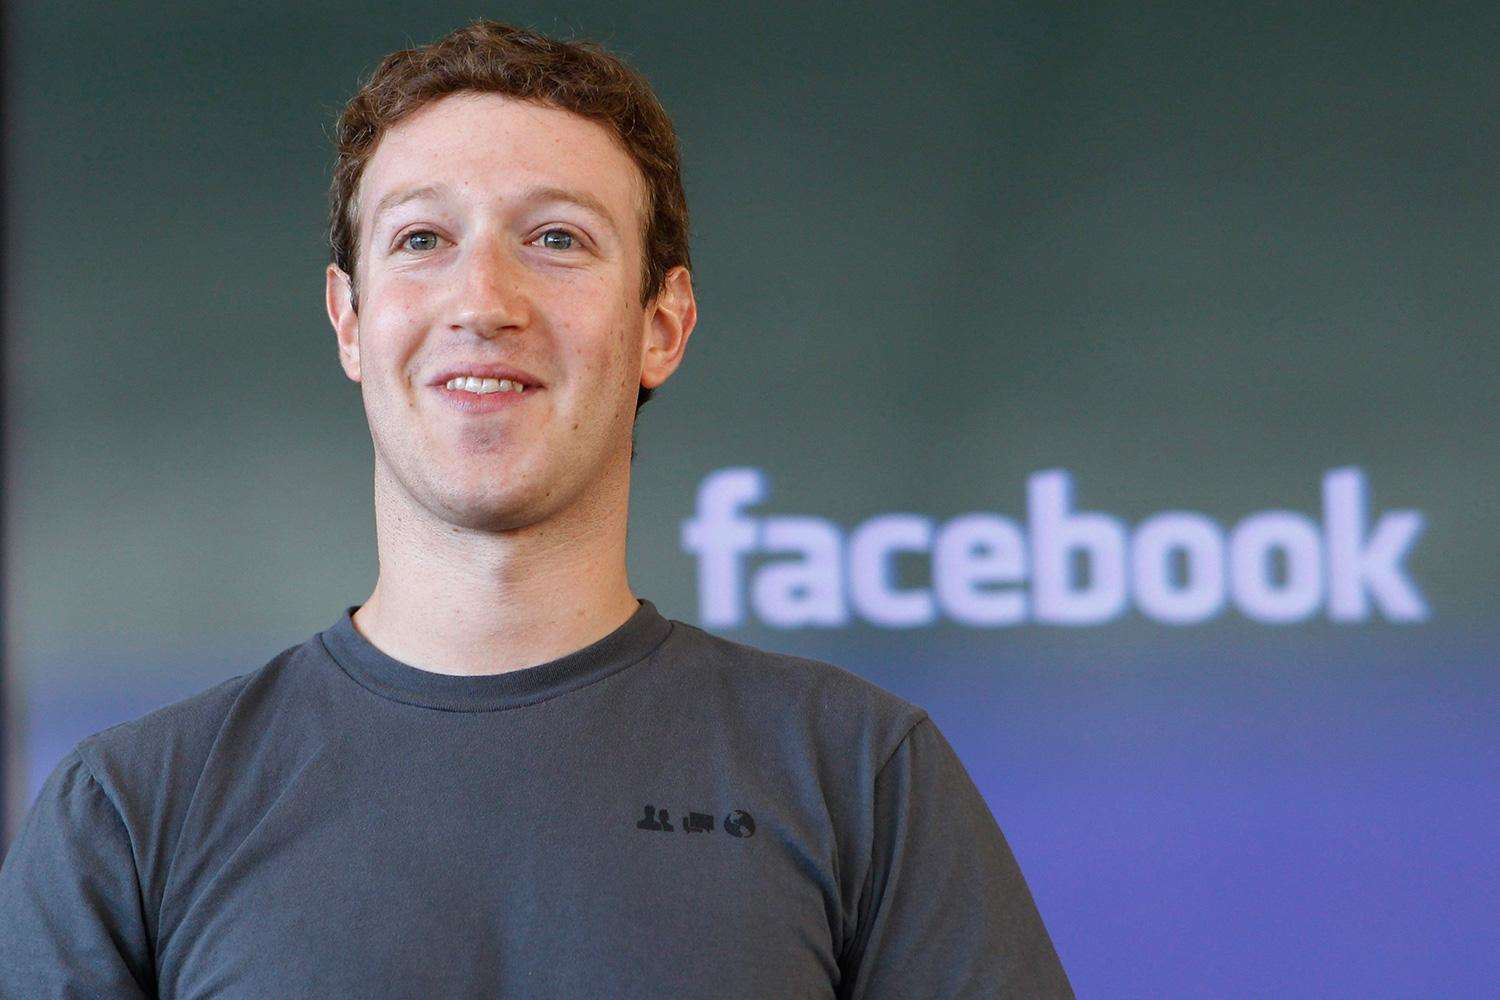 Facebook share price up as profits rise whopping 70pc